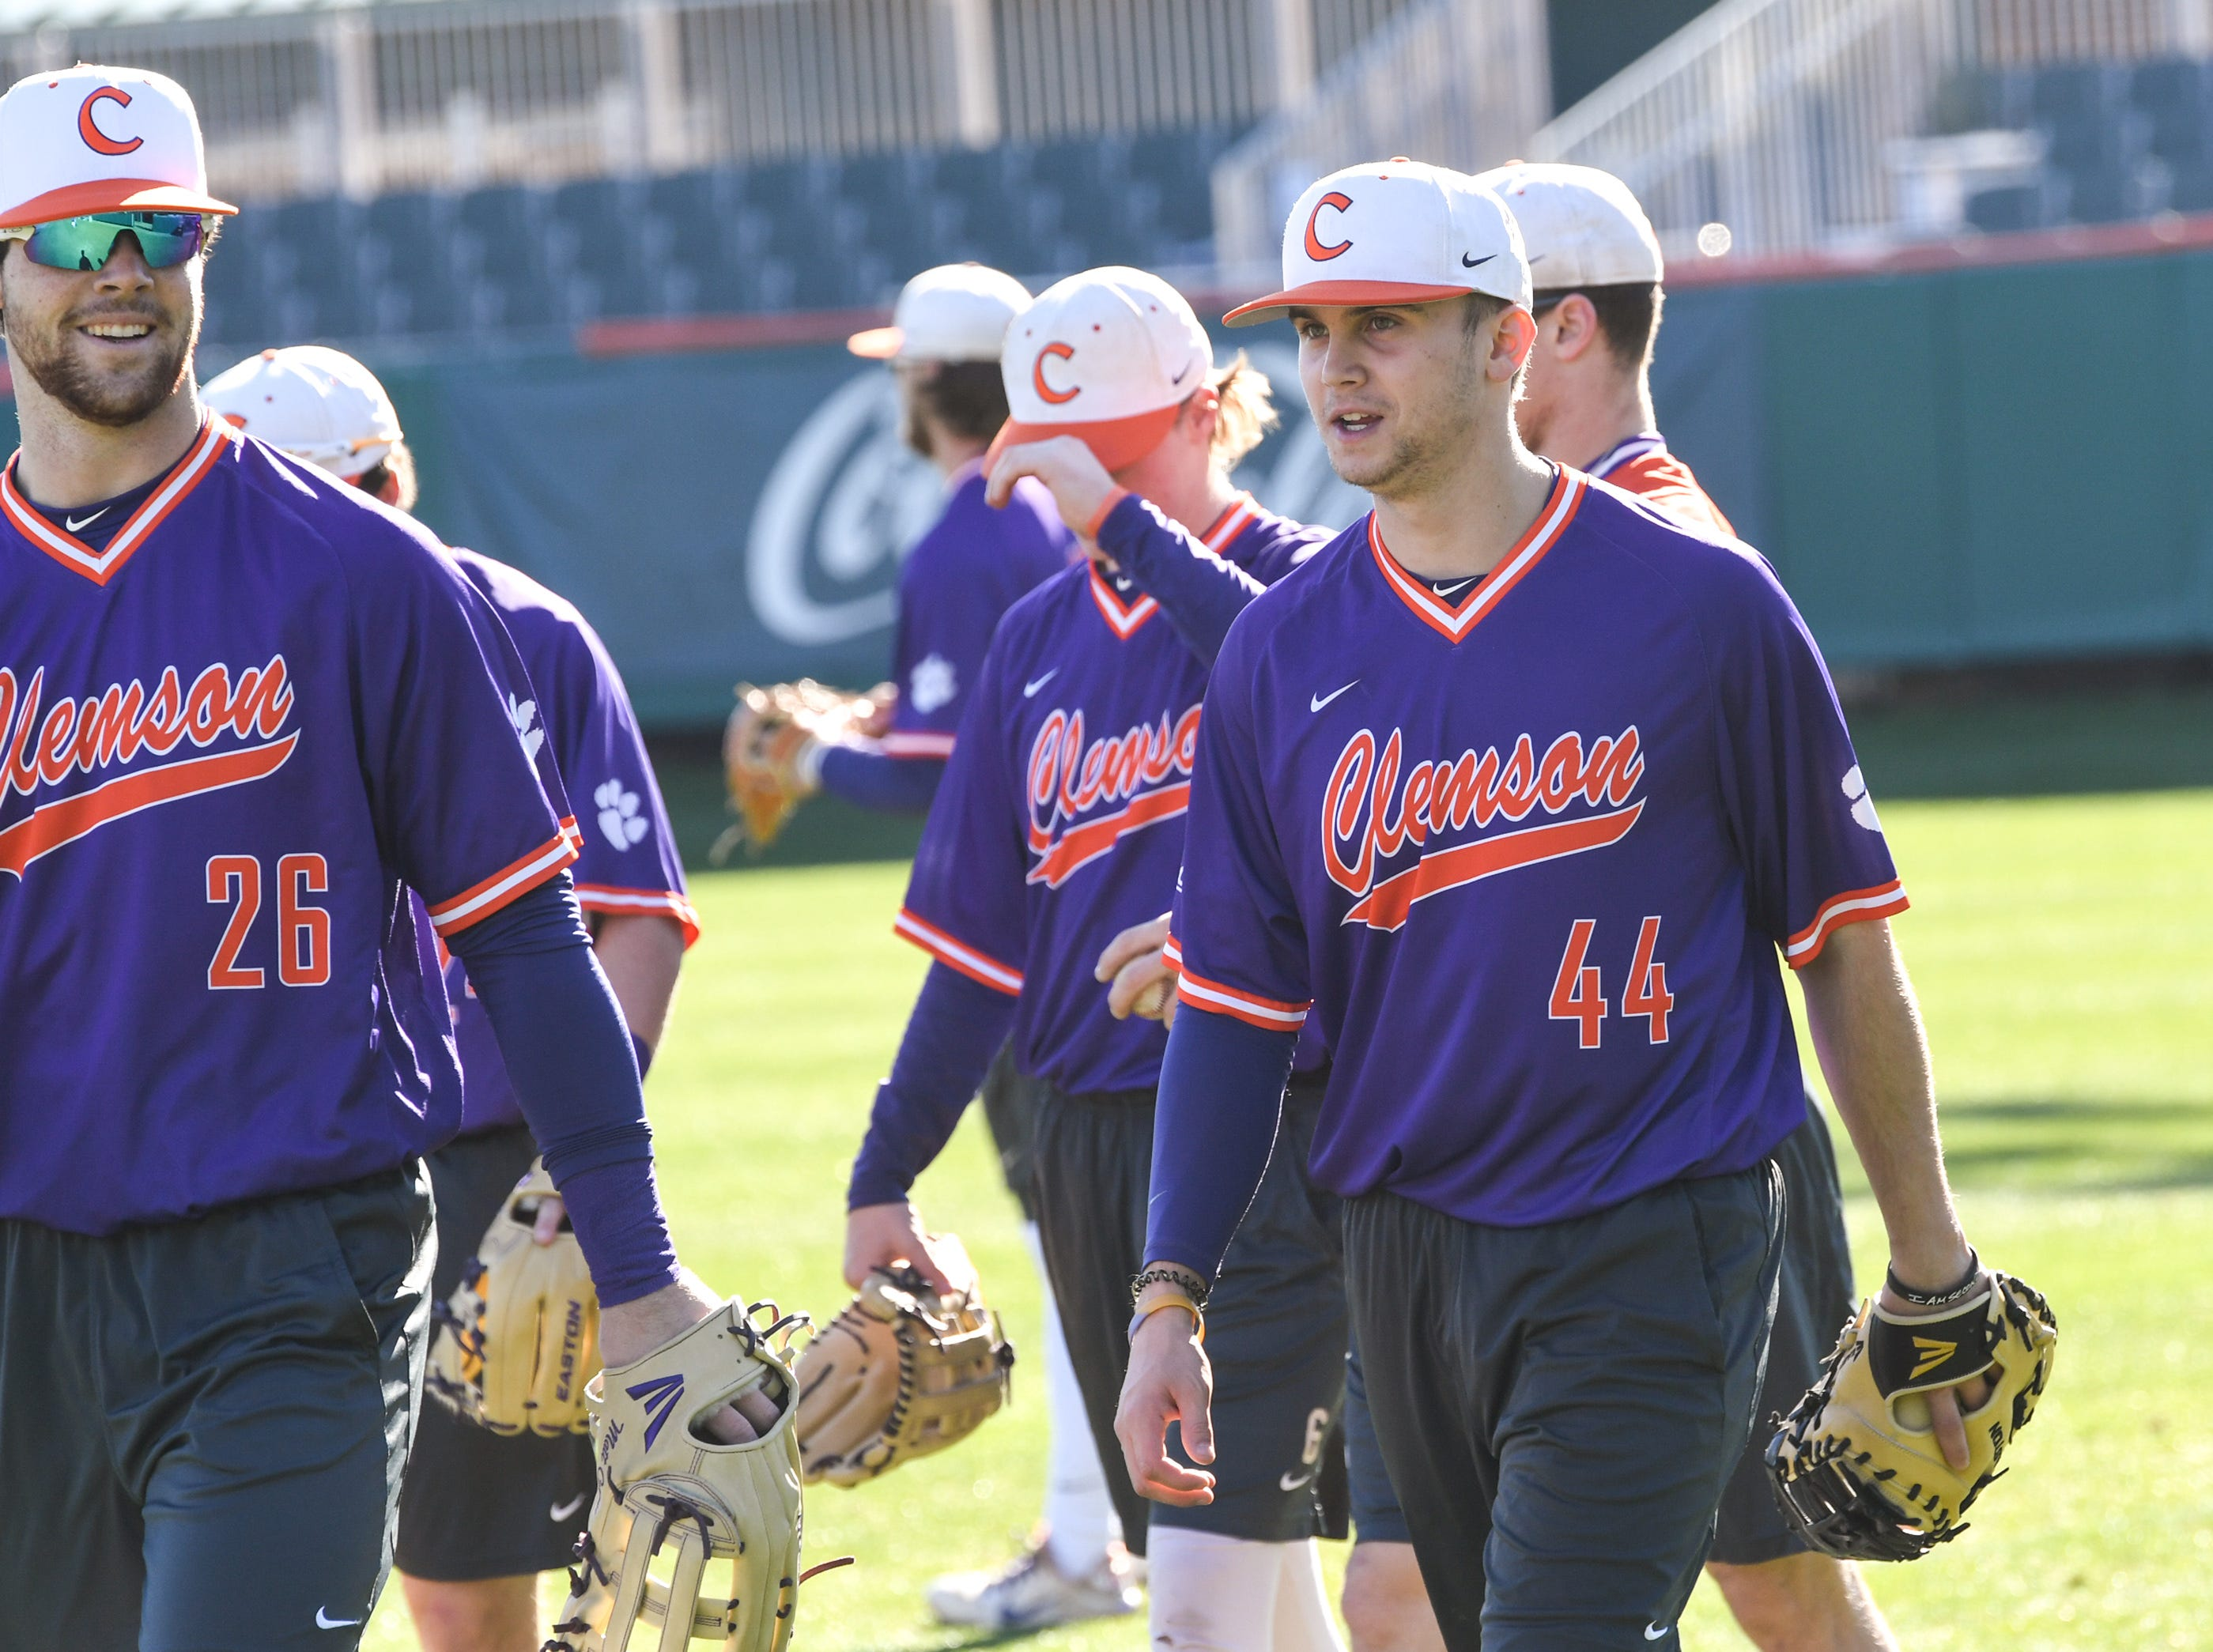 Clemson freshmen Matt Cooper (26), and Bryar Hawkins (44) warm up together during practice at Doug Kingsmore Stadium in Clemson Friday.